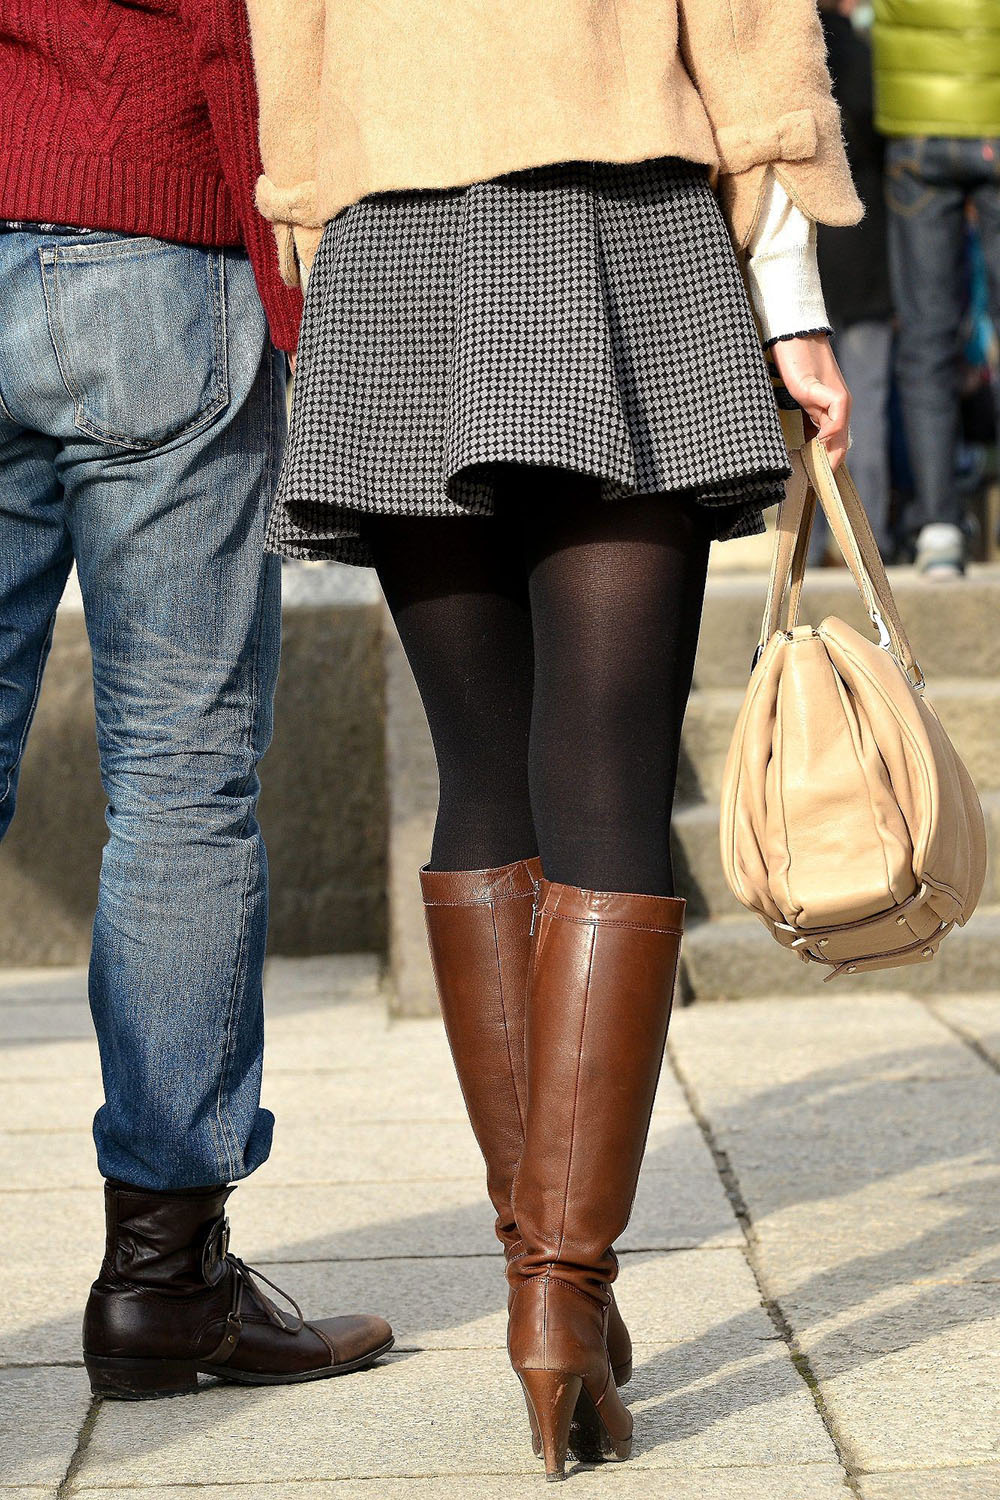 Classy outfit with pantyhose, miniskirt, leggings